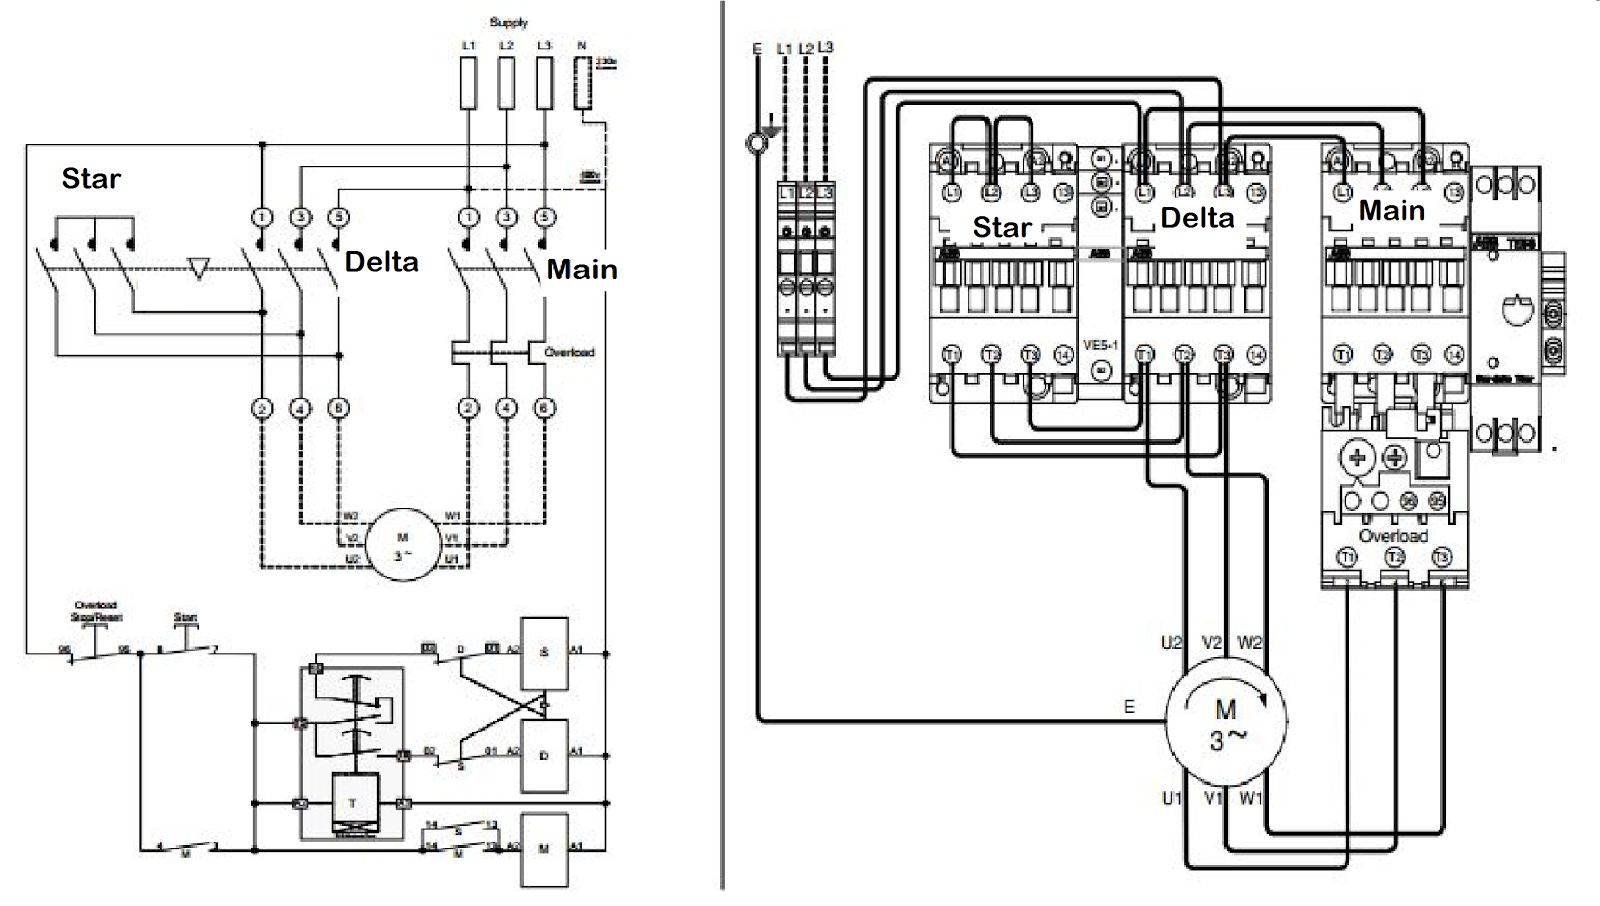 star-delta starter connection diagram